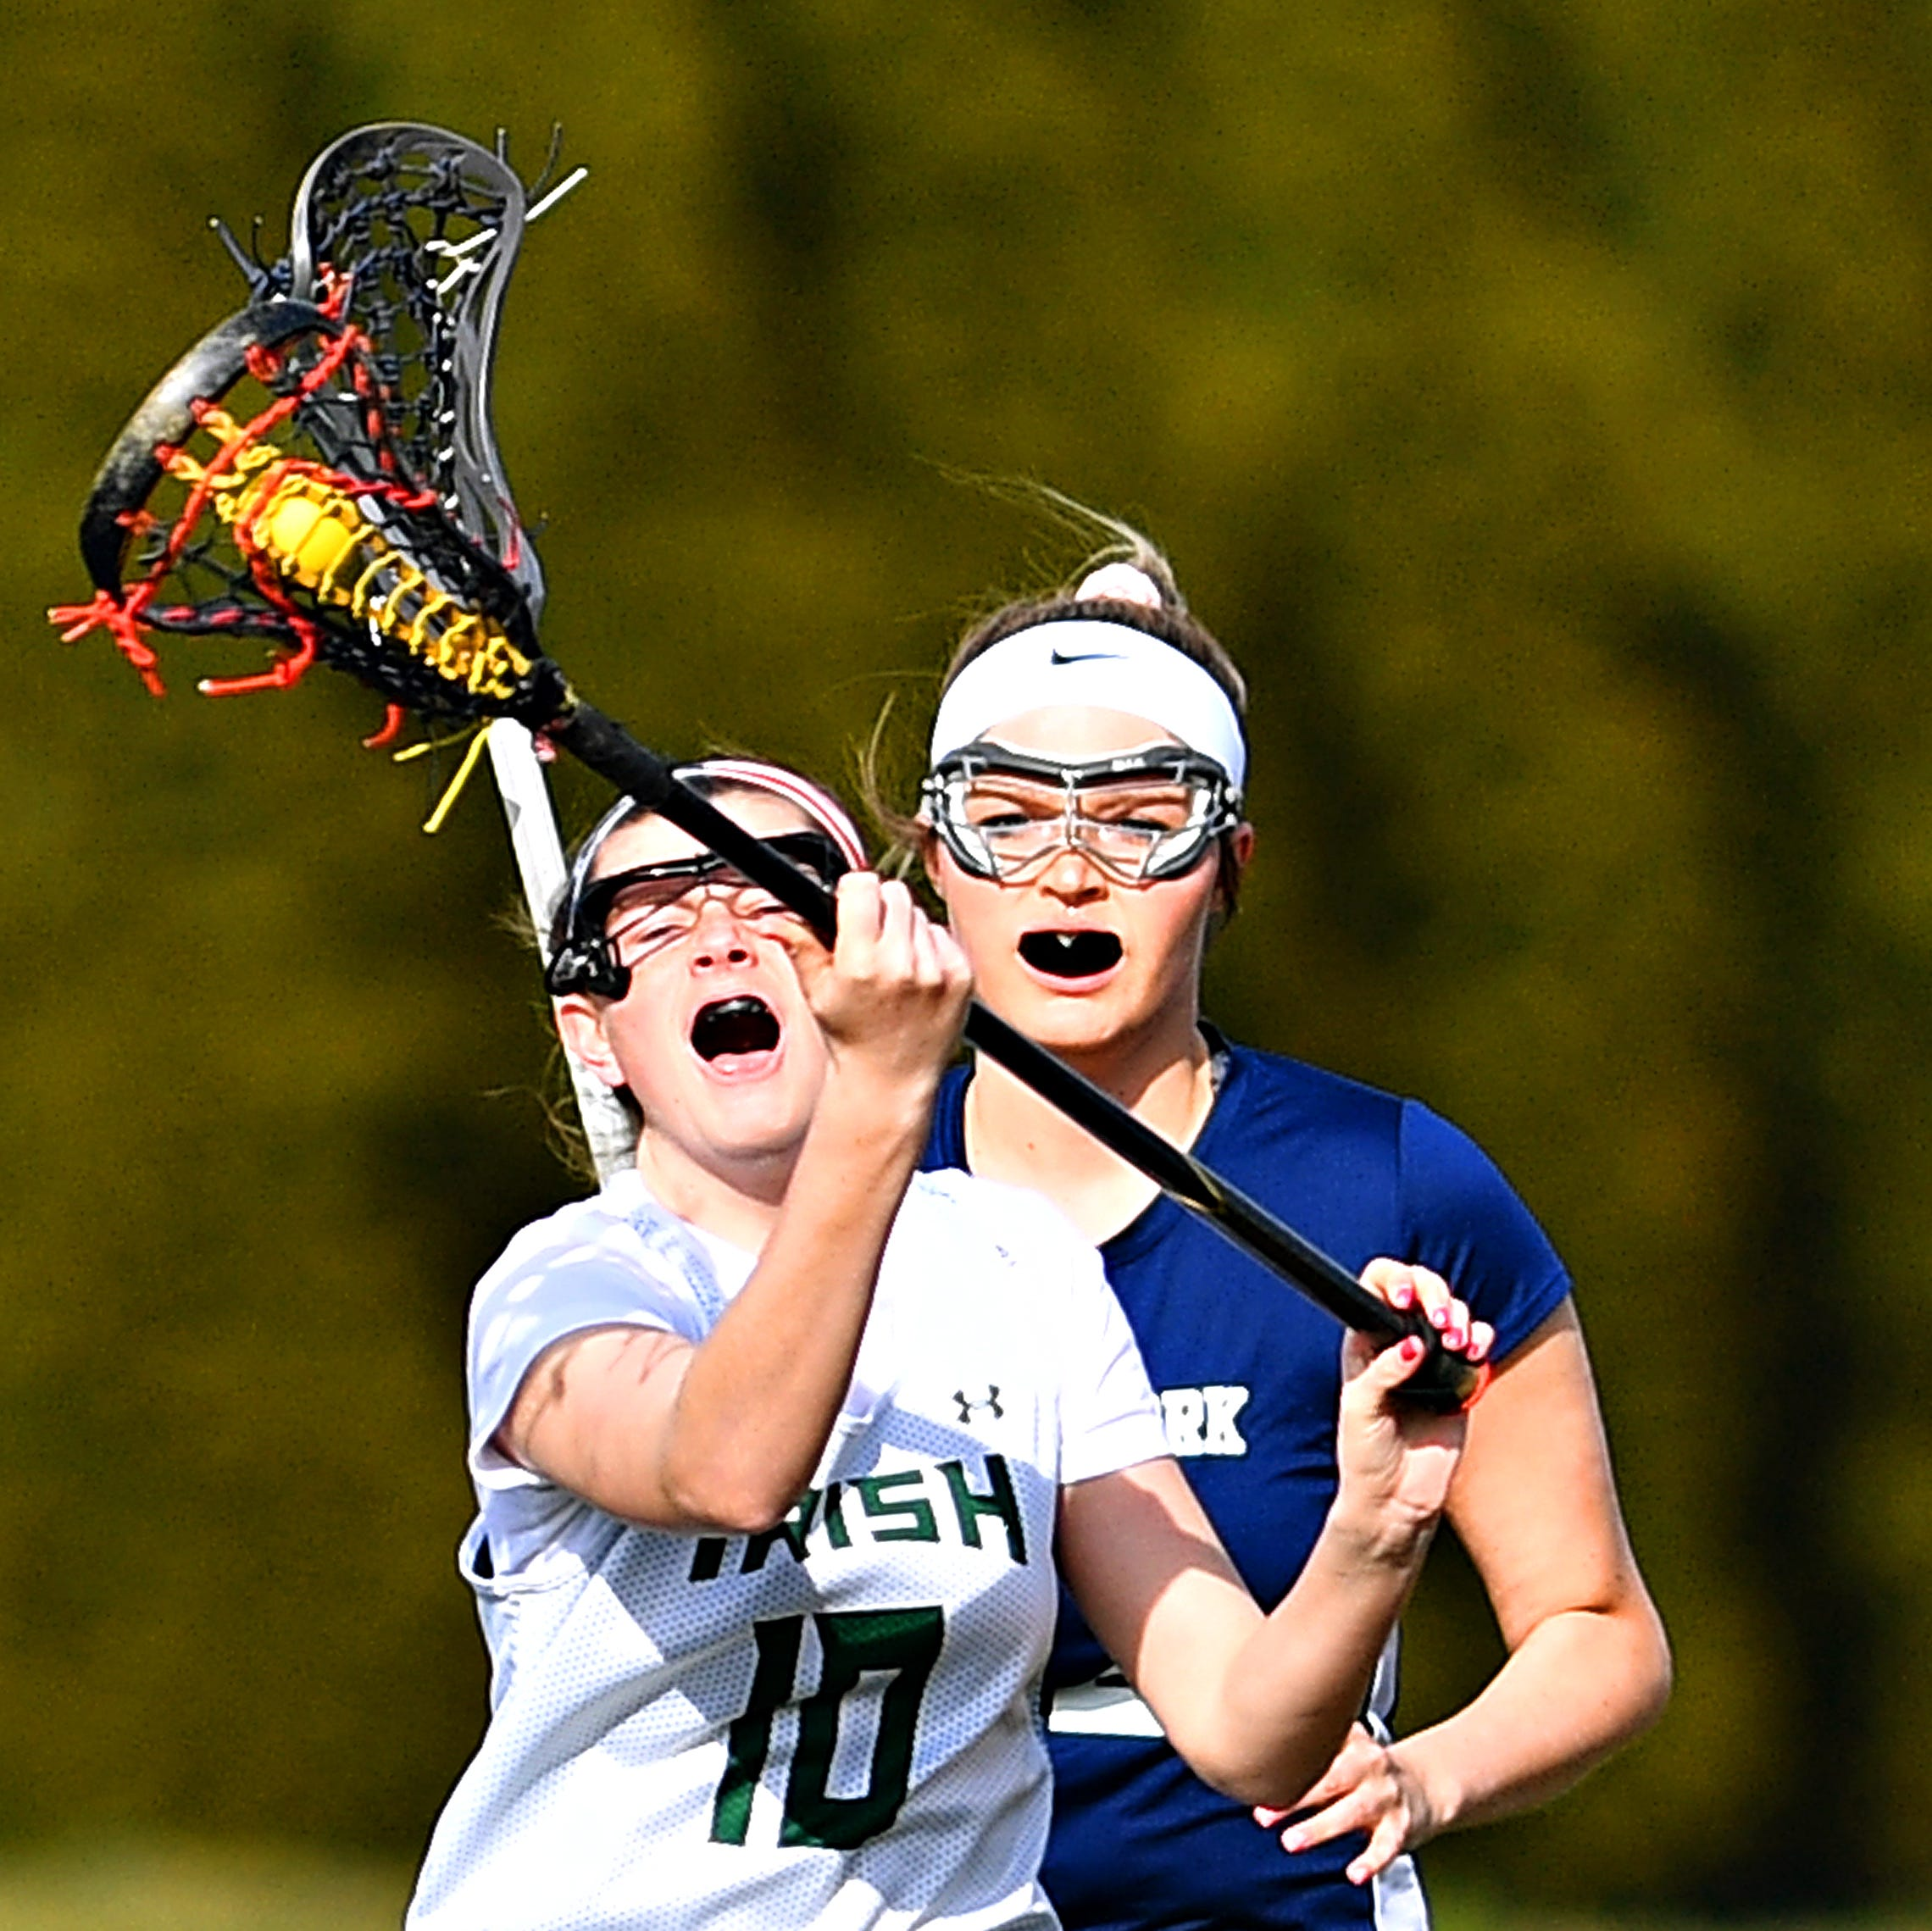 PREP ROUNDUP, THURSDAY, MARCH 28: York Catholic off to sizzling start in girls' lacrosse